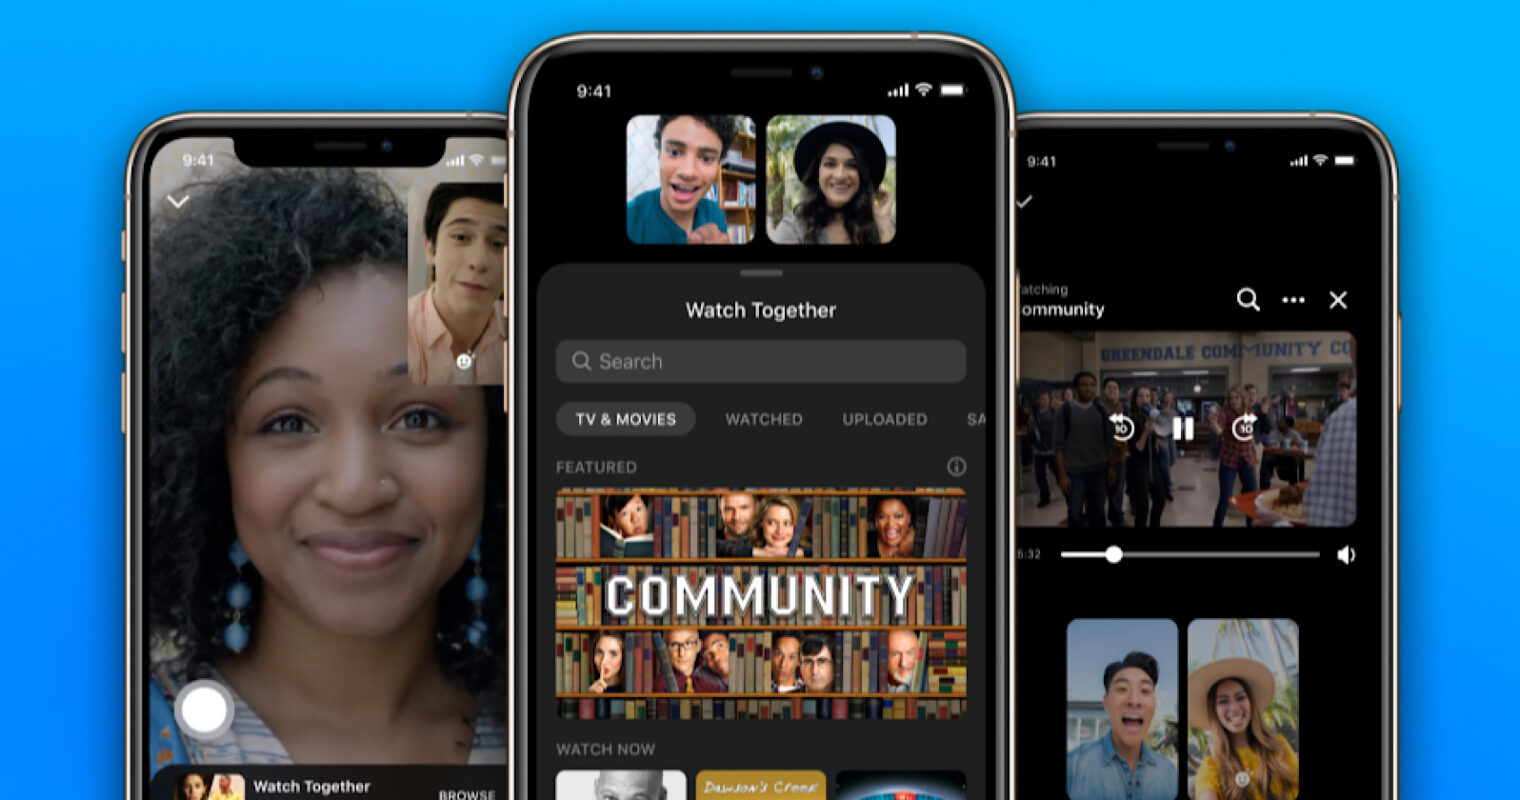 Facebook Messenger Lets Users Watch Videos Together